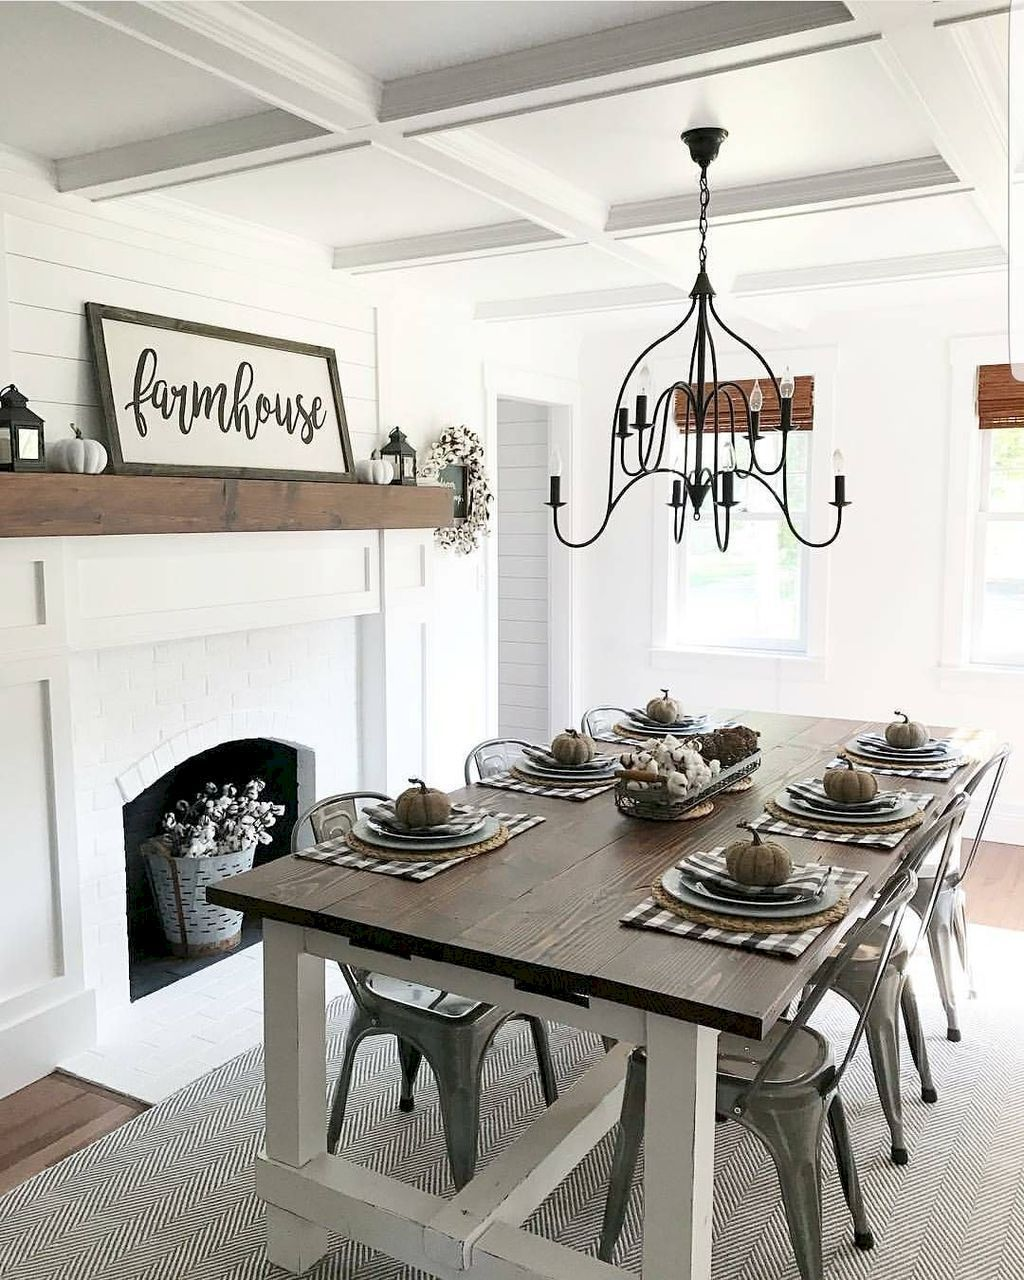 Farmhouse Style Dining Room Fireplace Farmhouse Style Dining Room Farmhouse Dining Rooms Decor